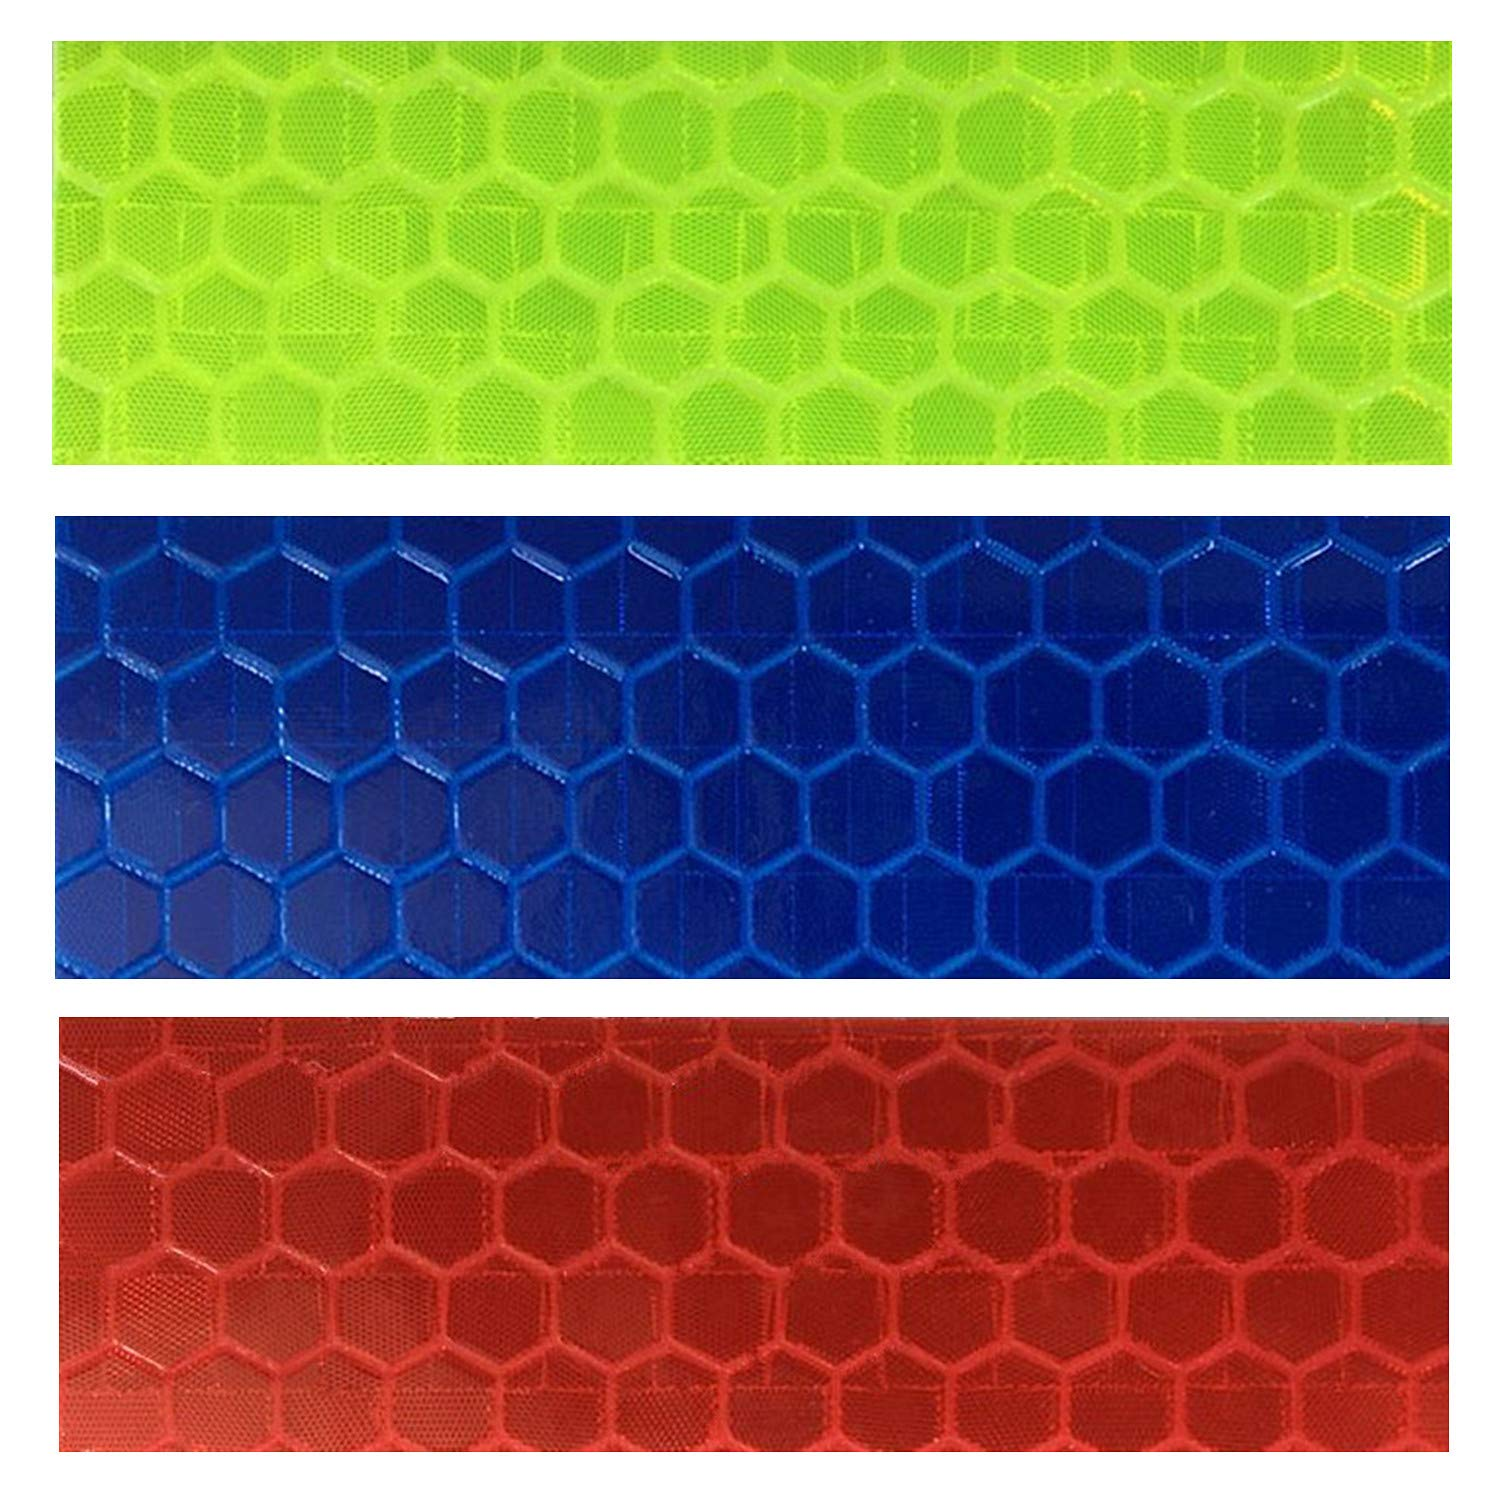 GOTOONE Reflective Tape Stickers (36 Pack) Diamond Grade Safety Warning Conspicuity Tapes Waterproof 0.63 x 2 Inch Multicolored